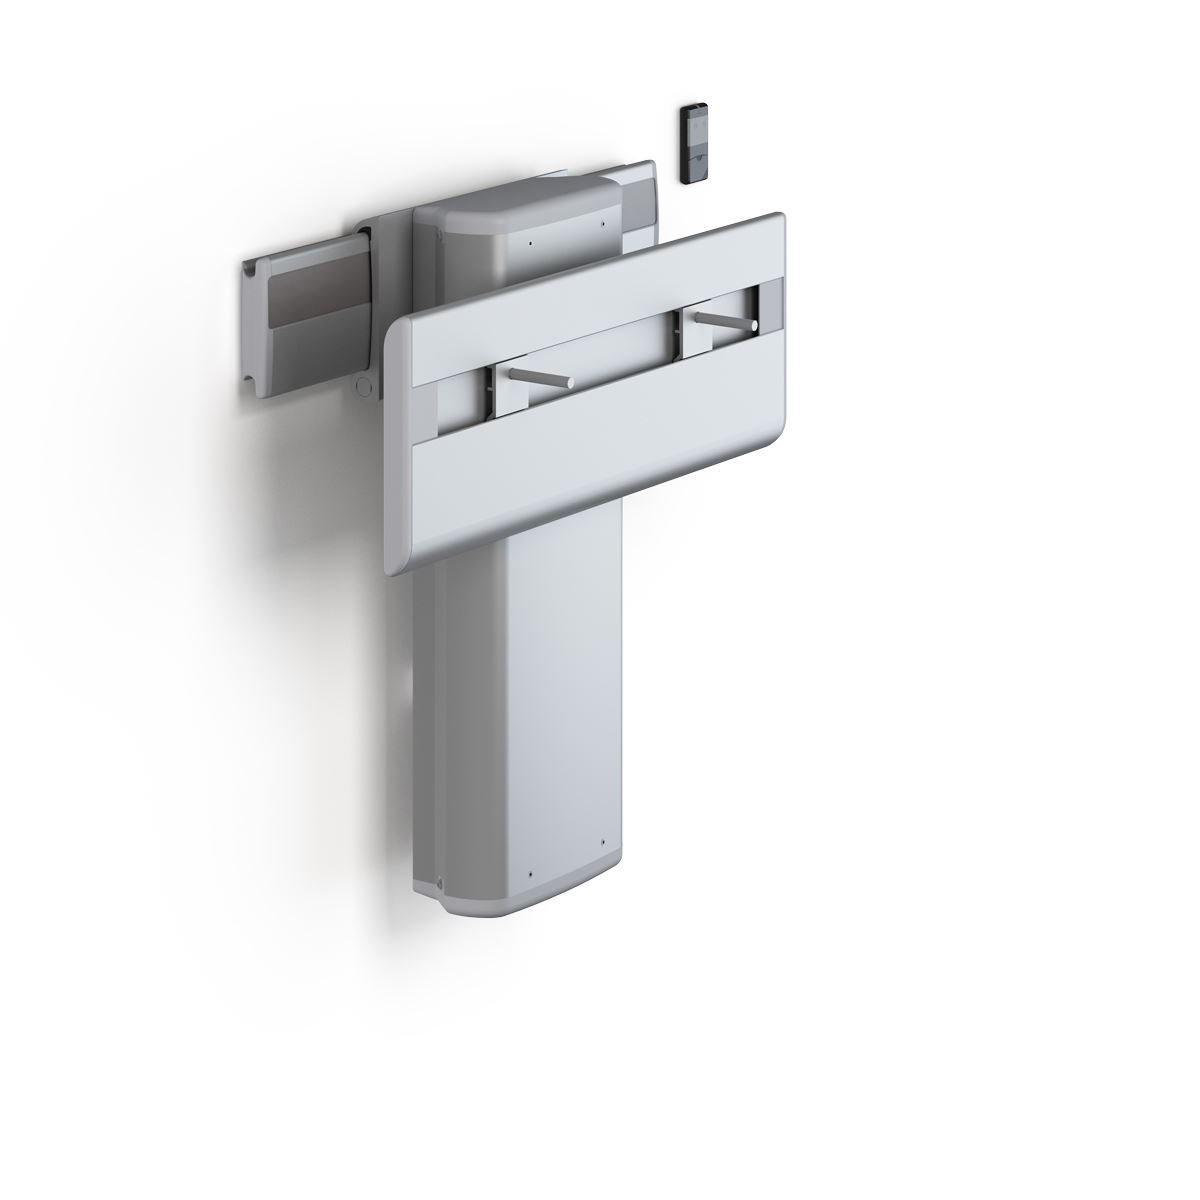 PLUS wash basin bracket with cordless remote control, electrically height adjustable and sideways adjustable